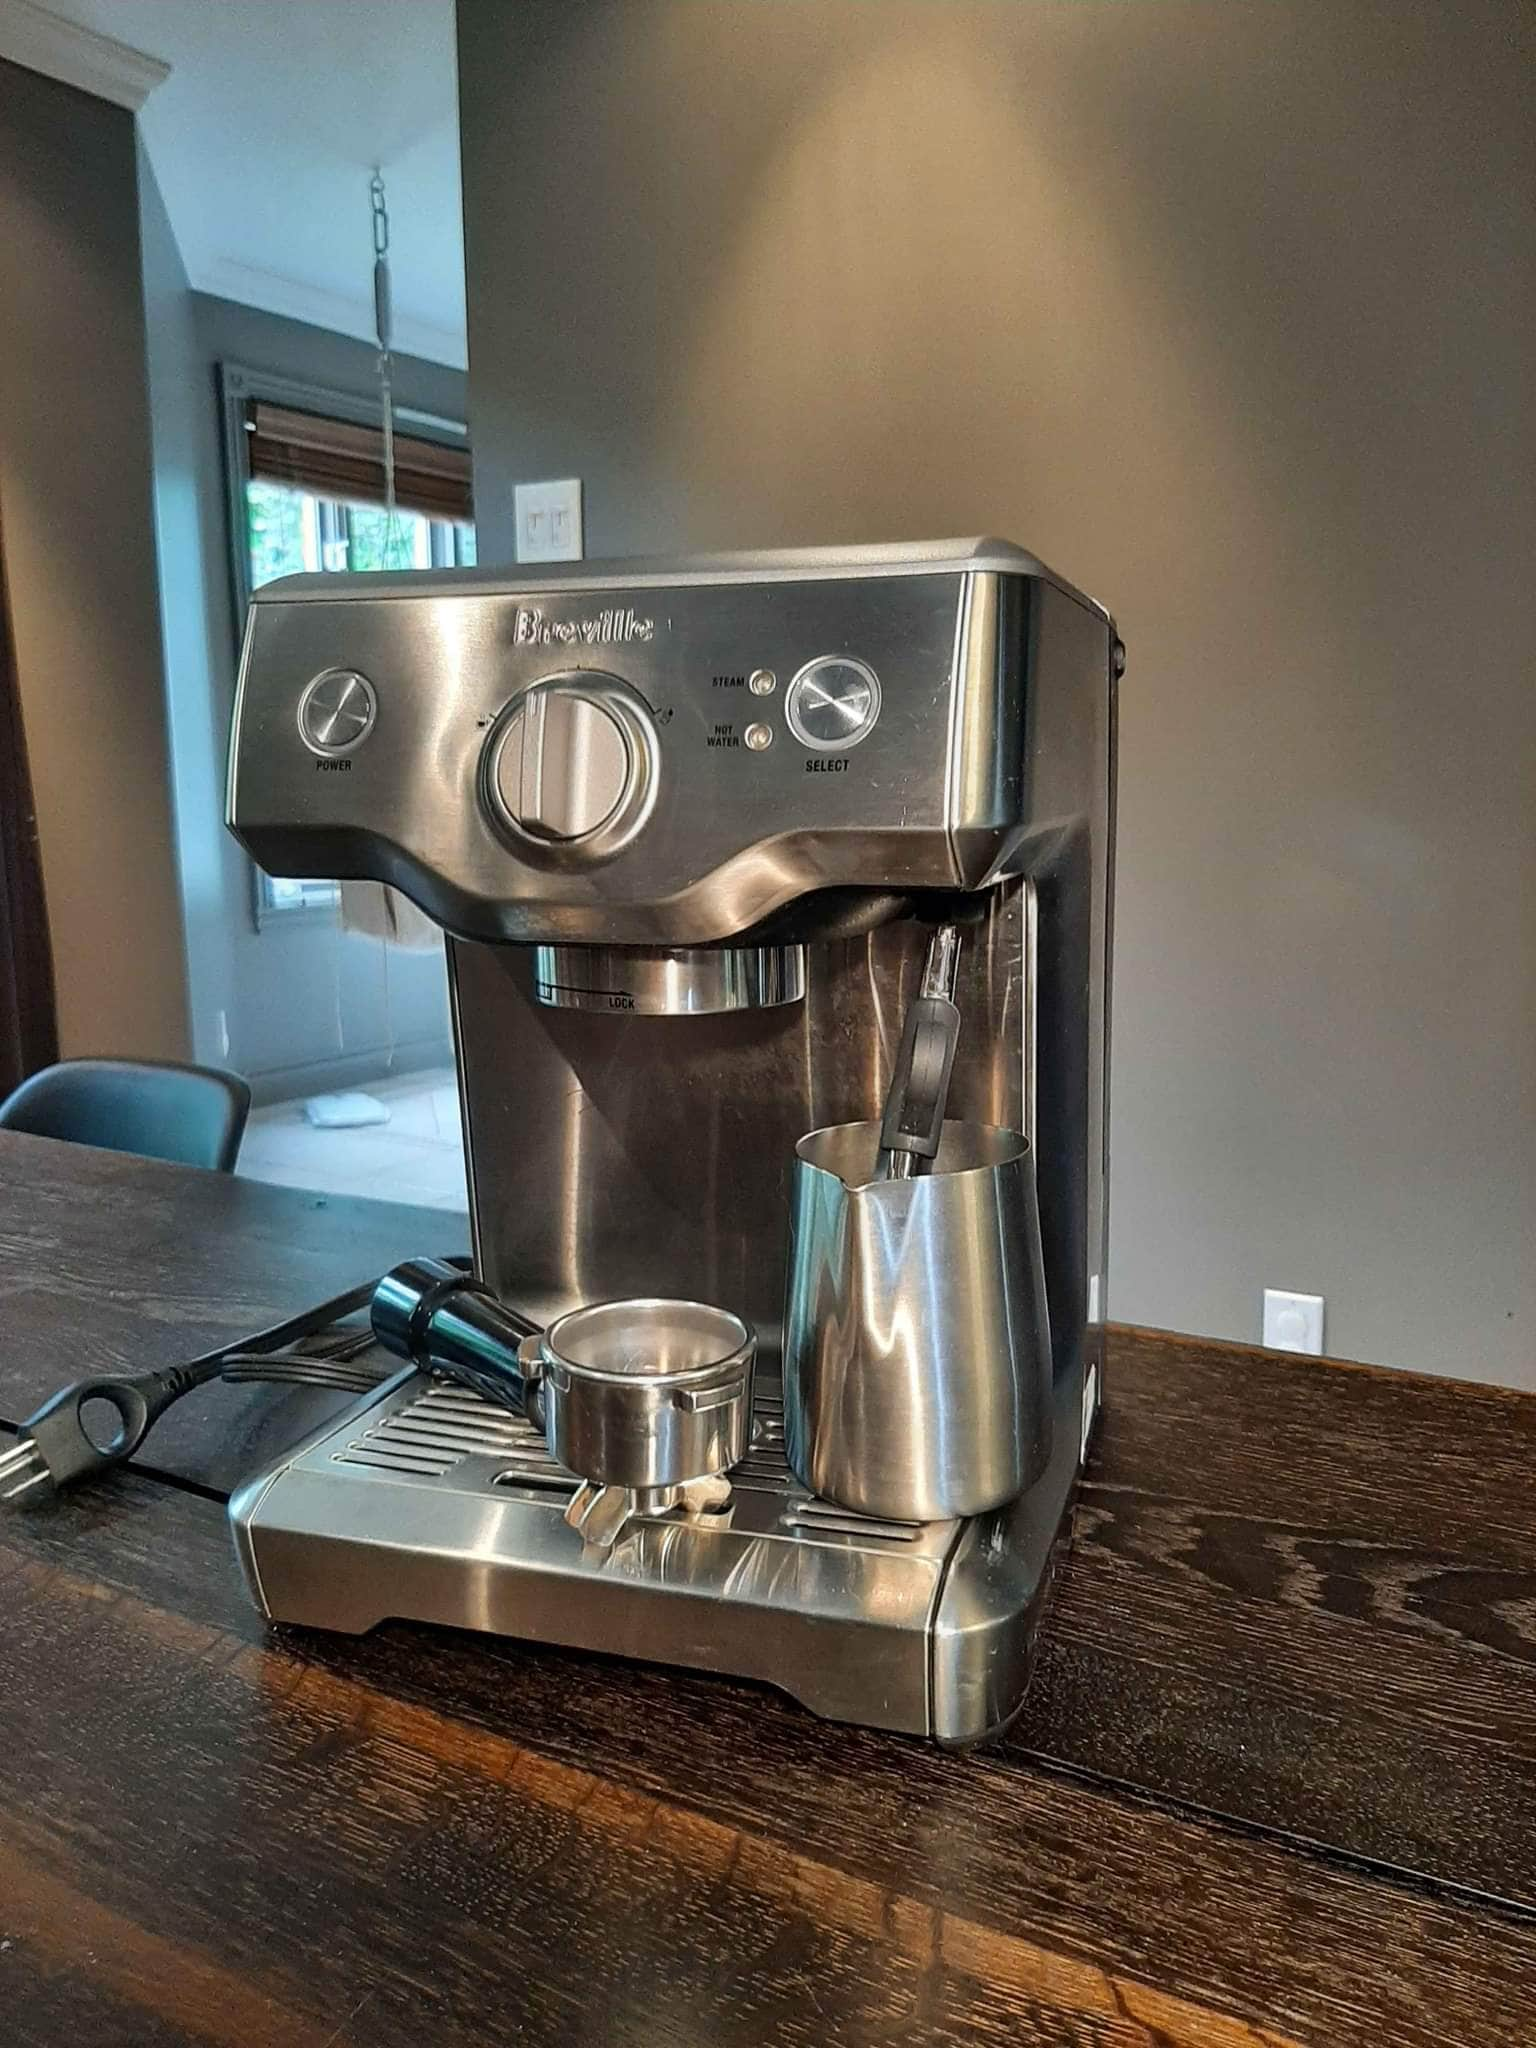 Breville Duo Temp Pro is designed with cleaning alert and auto-purge cycle